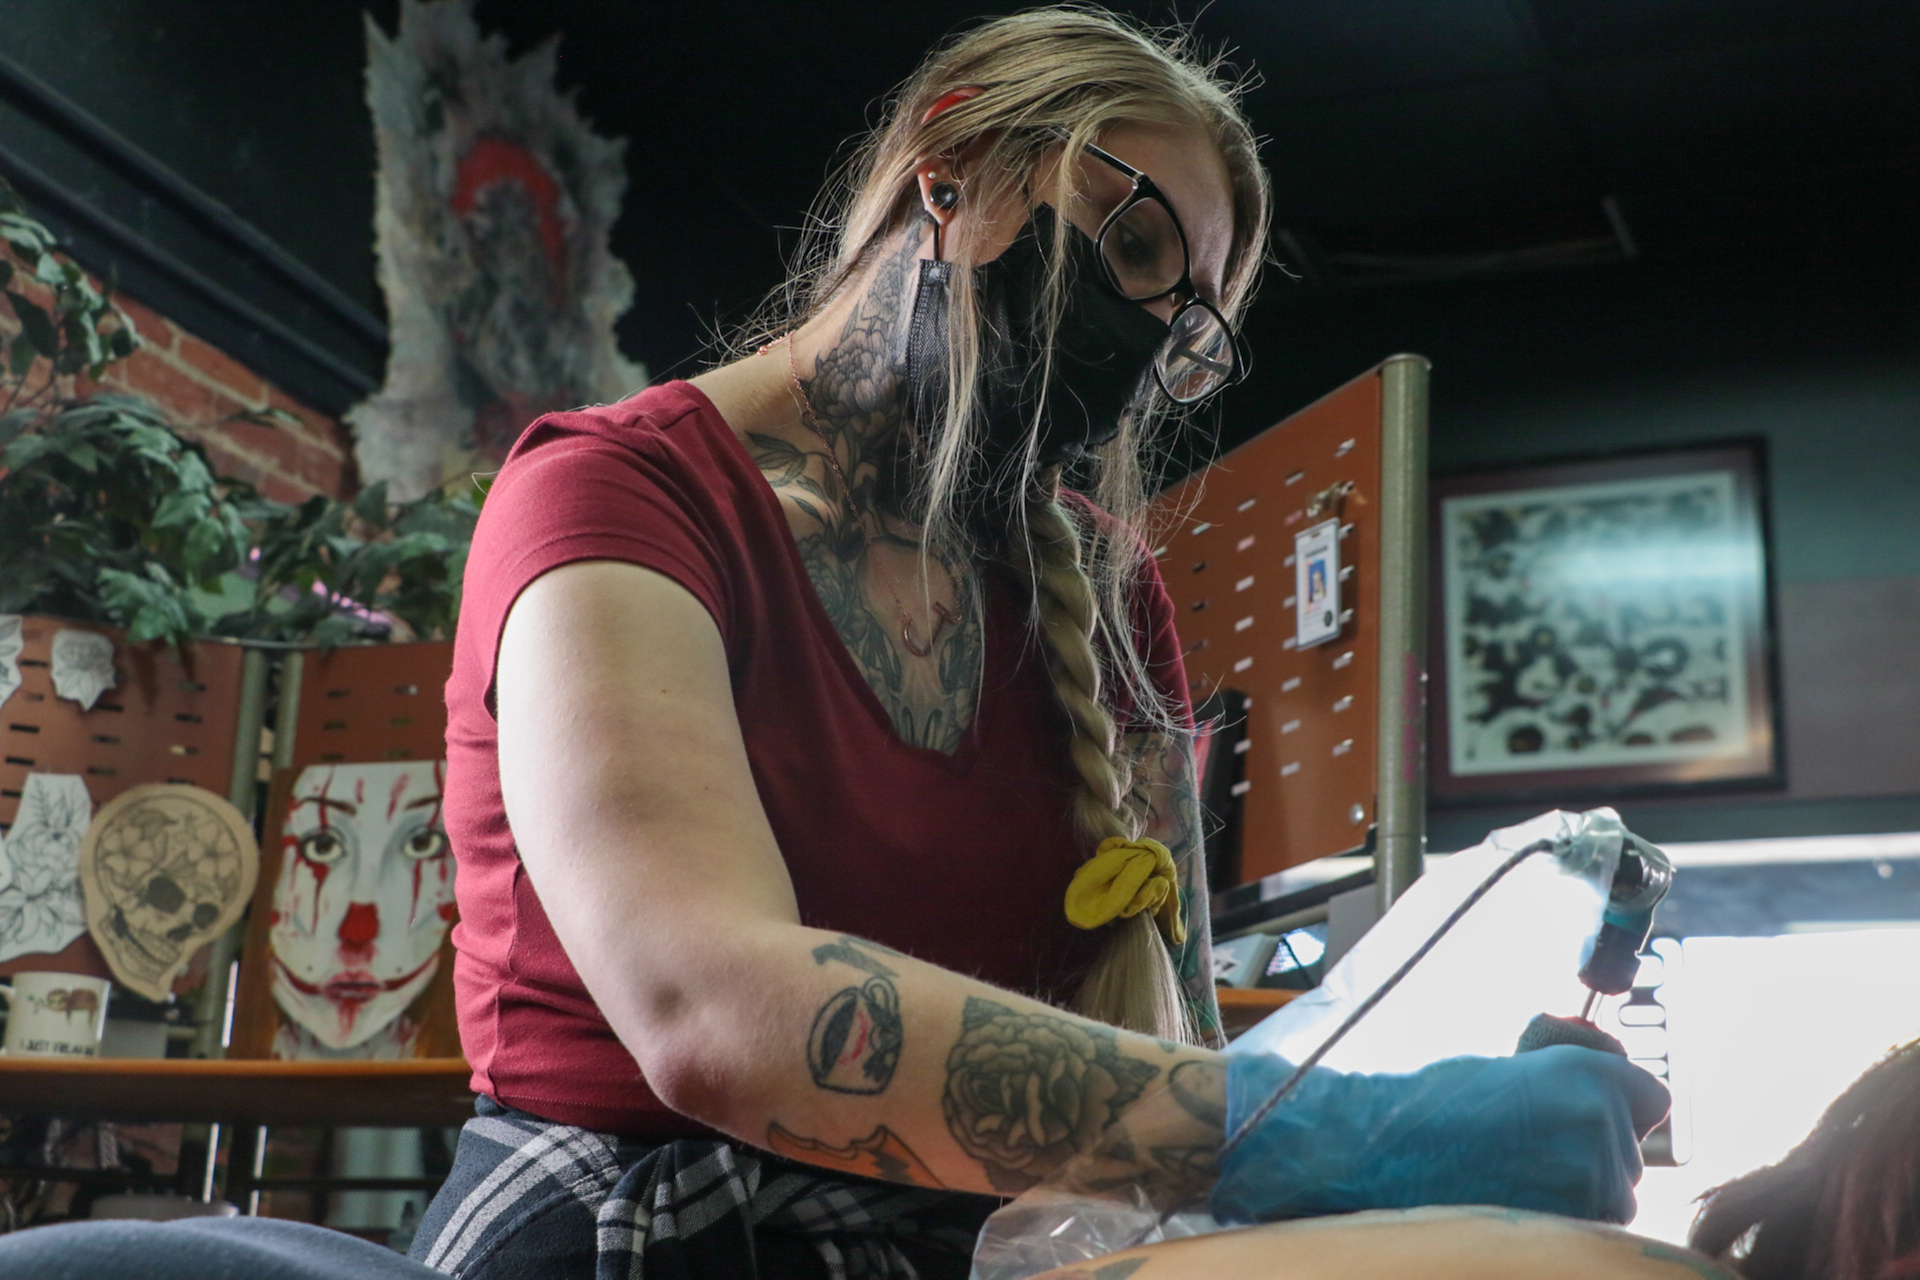 Jordan Jasinski on tattooing, mental health and her journey into the realm of fitness